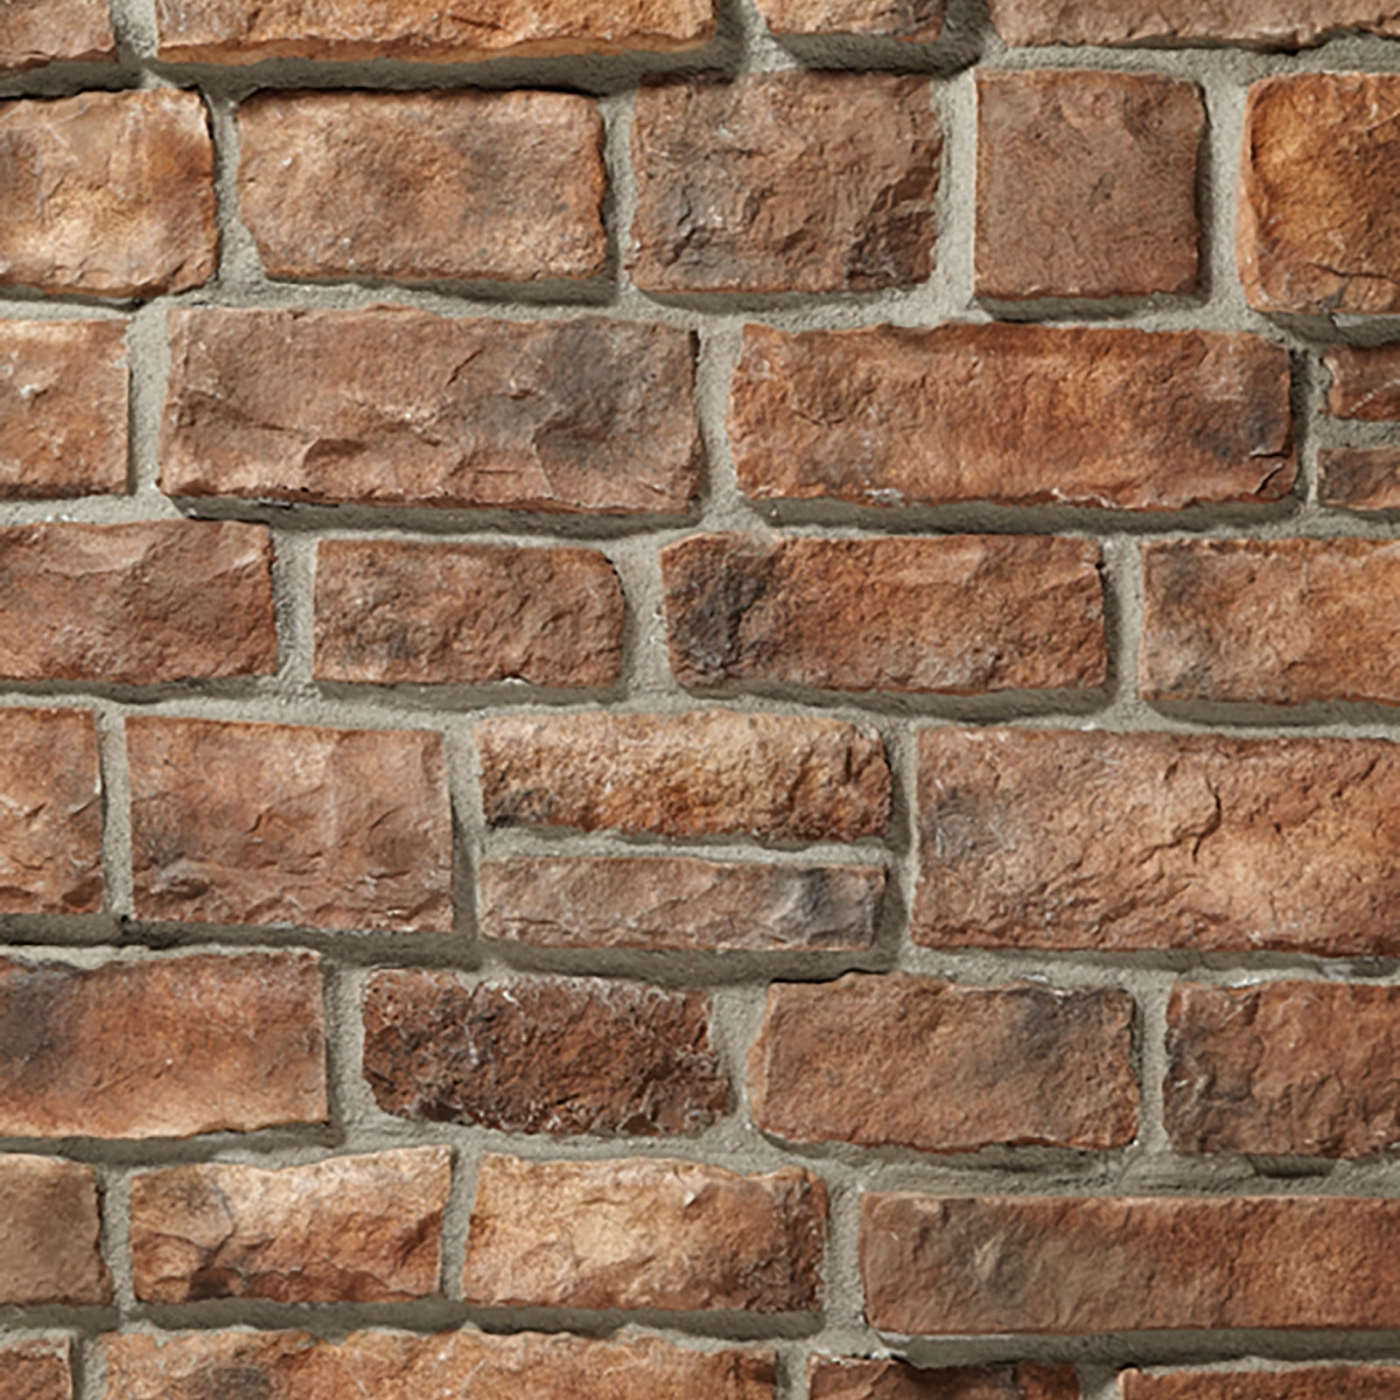 High Country Cobble Stone Stone Veneer from Environmental StoneWorks